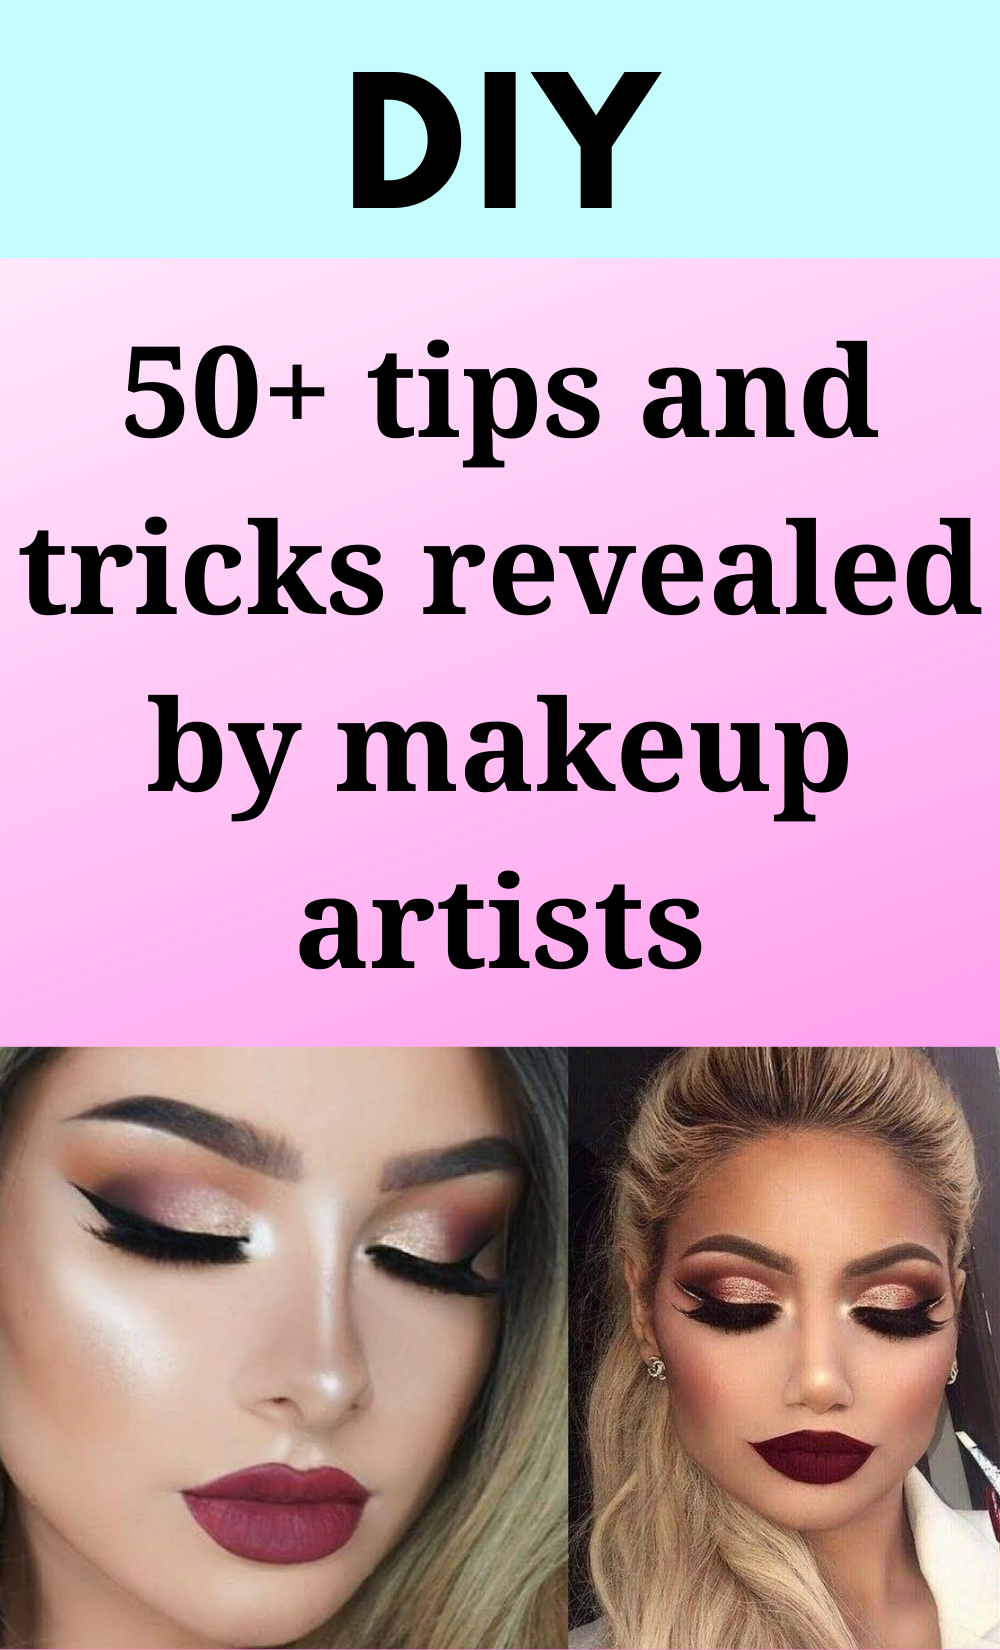 50+ tips and tricks revealed by makeup artists -   15 beauty Makeup hacks ideas